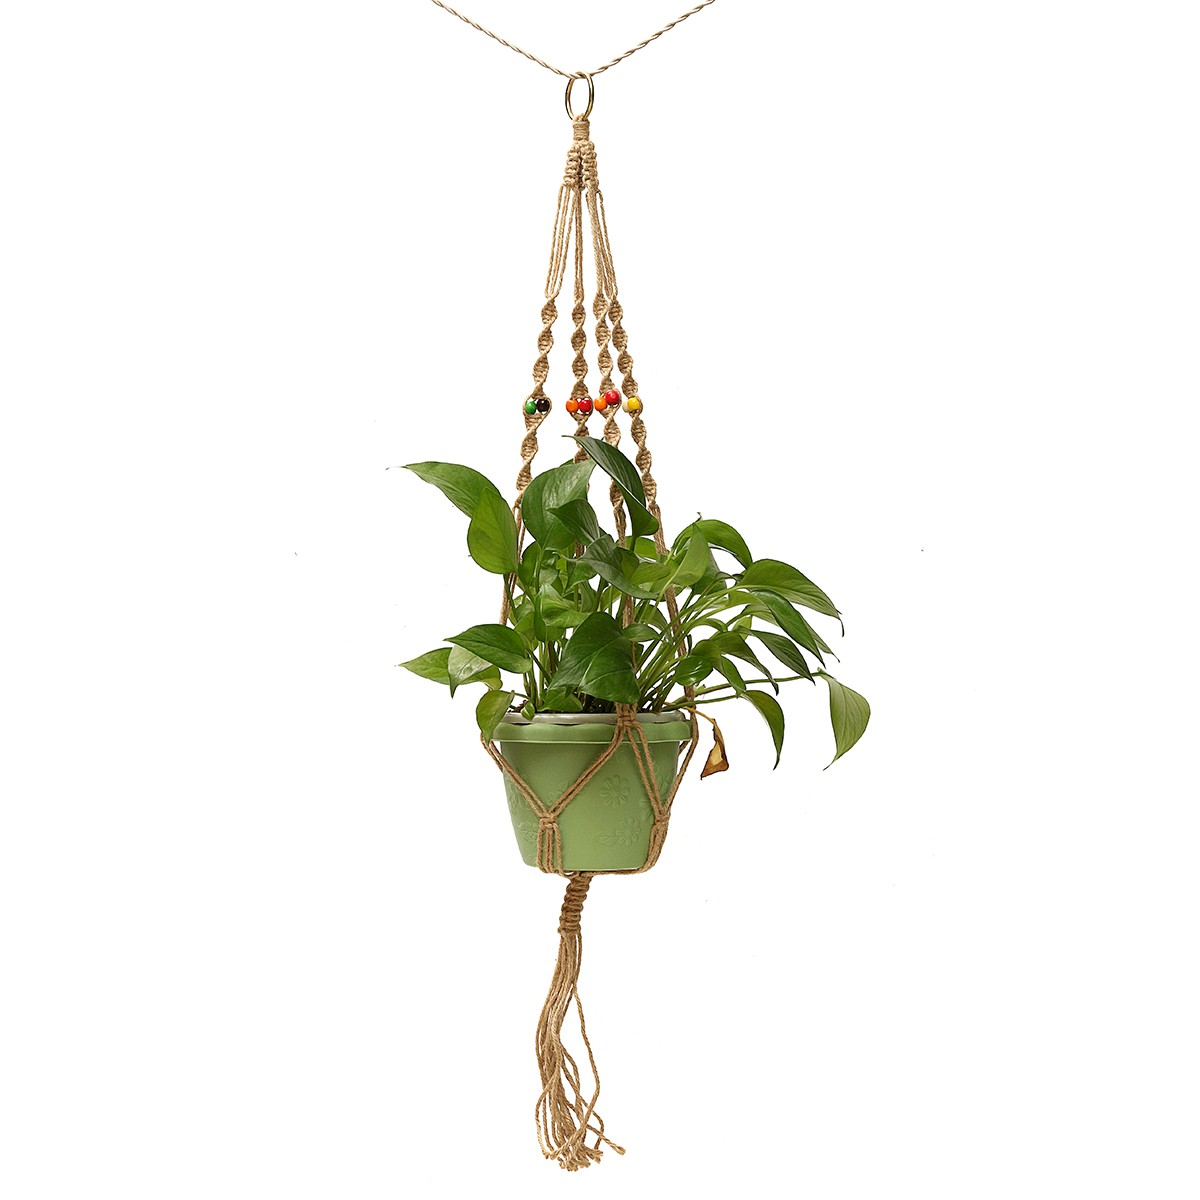 42 inch Bloempot Plant Hanger Macrame Jute Rope Indoor Outdoor Tuin Decoratieve Koord with Hook